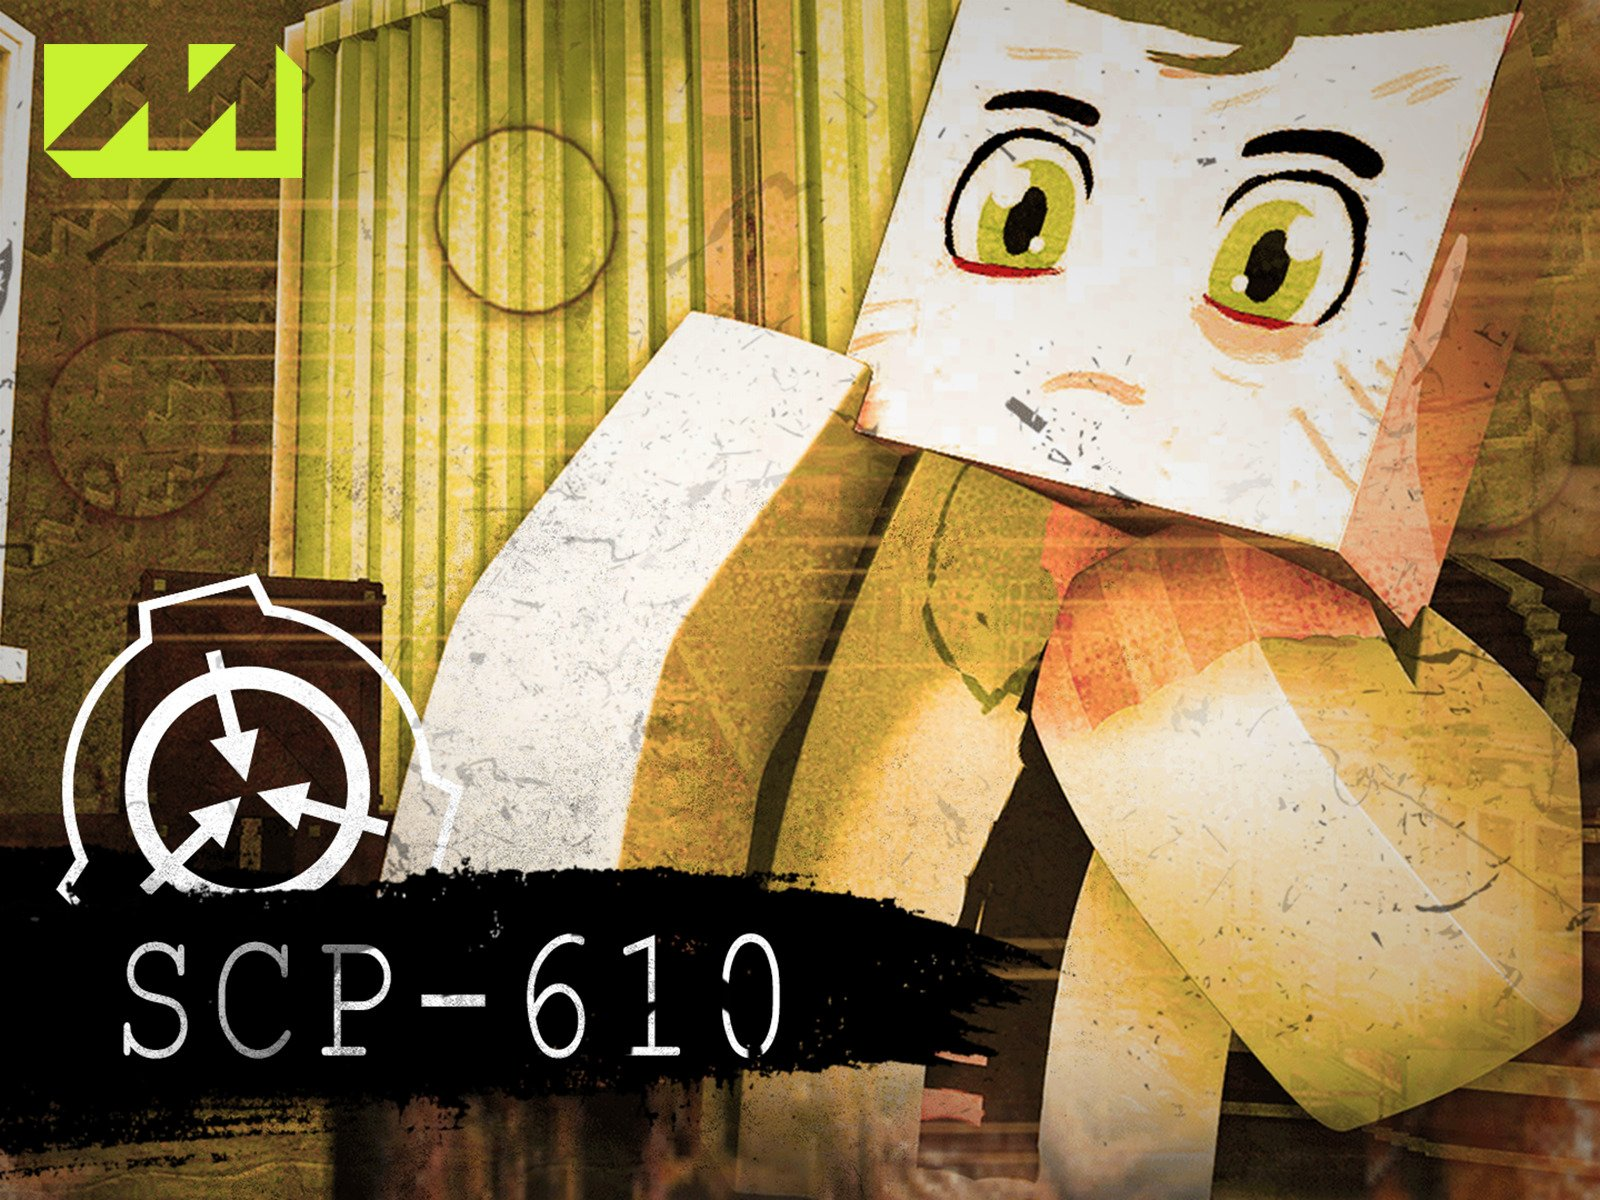 Roblox Scp 173 Scp 106 Watch Scp Foundation Prime Video